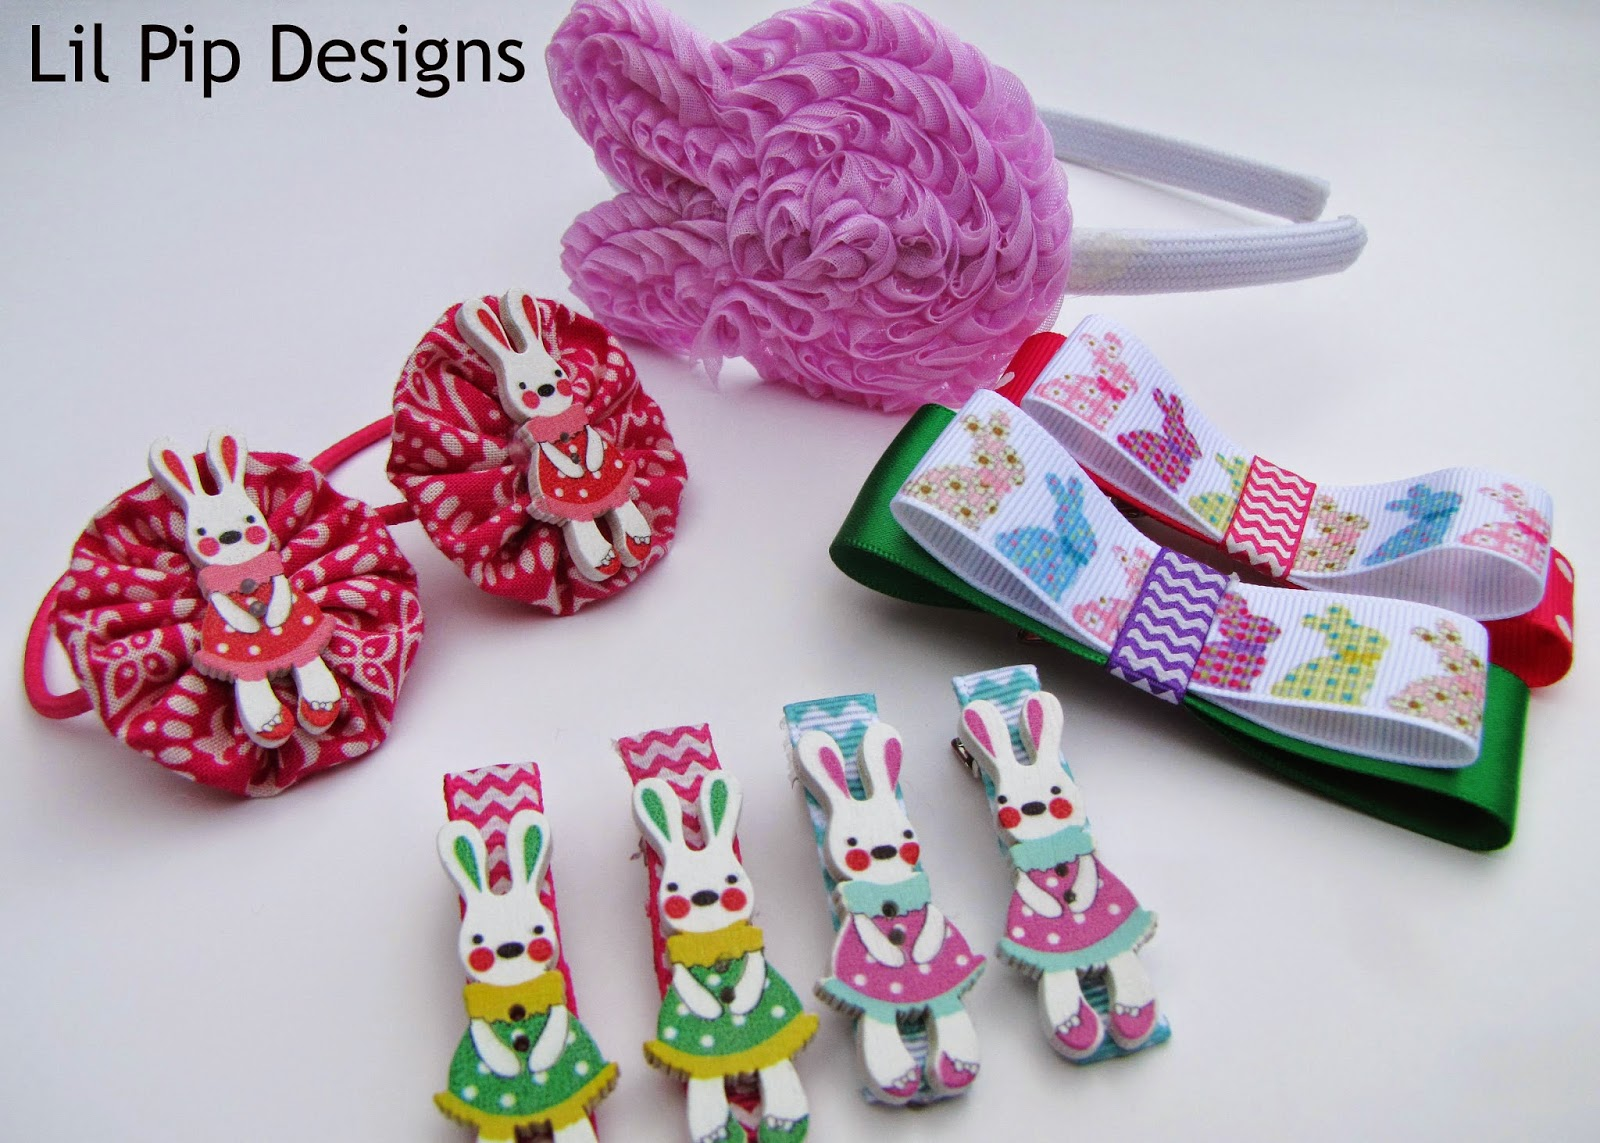 Lil pip designs handmade easter gift ideas handmade easter gift ideas negle Images